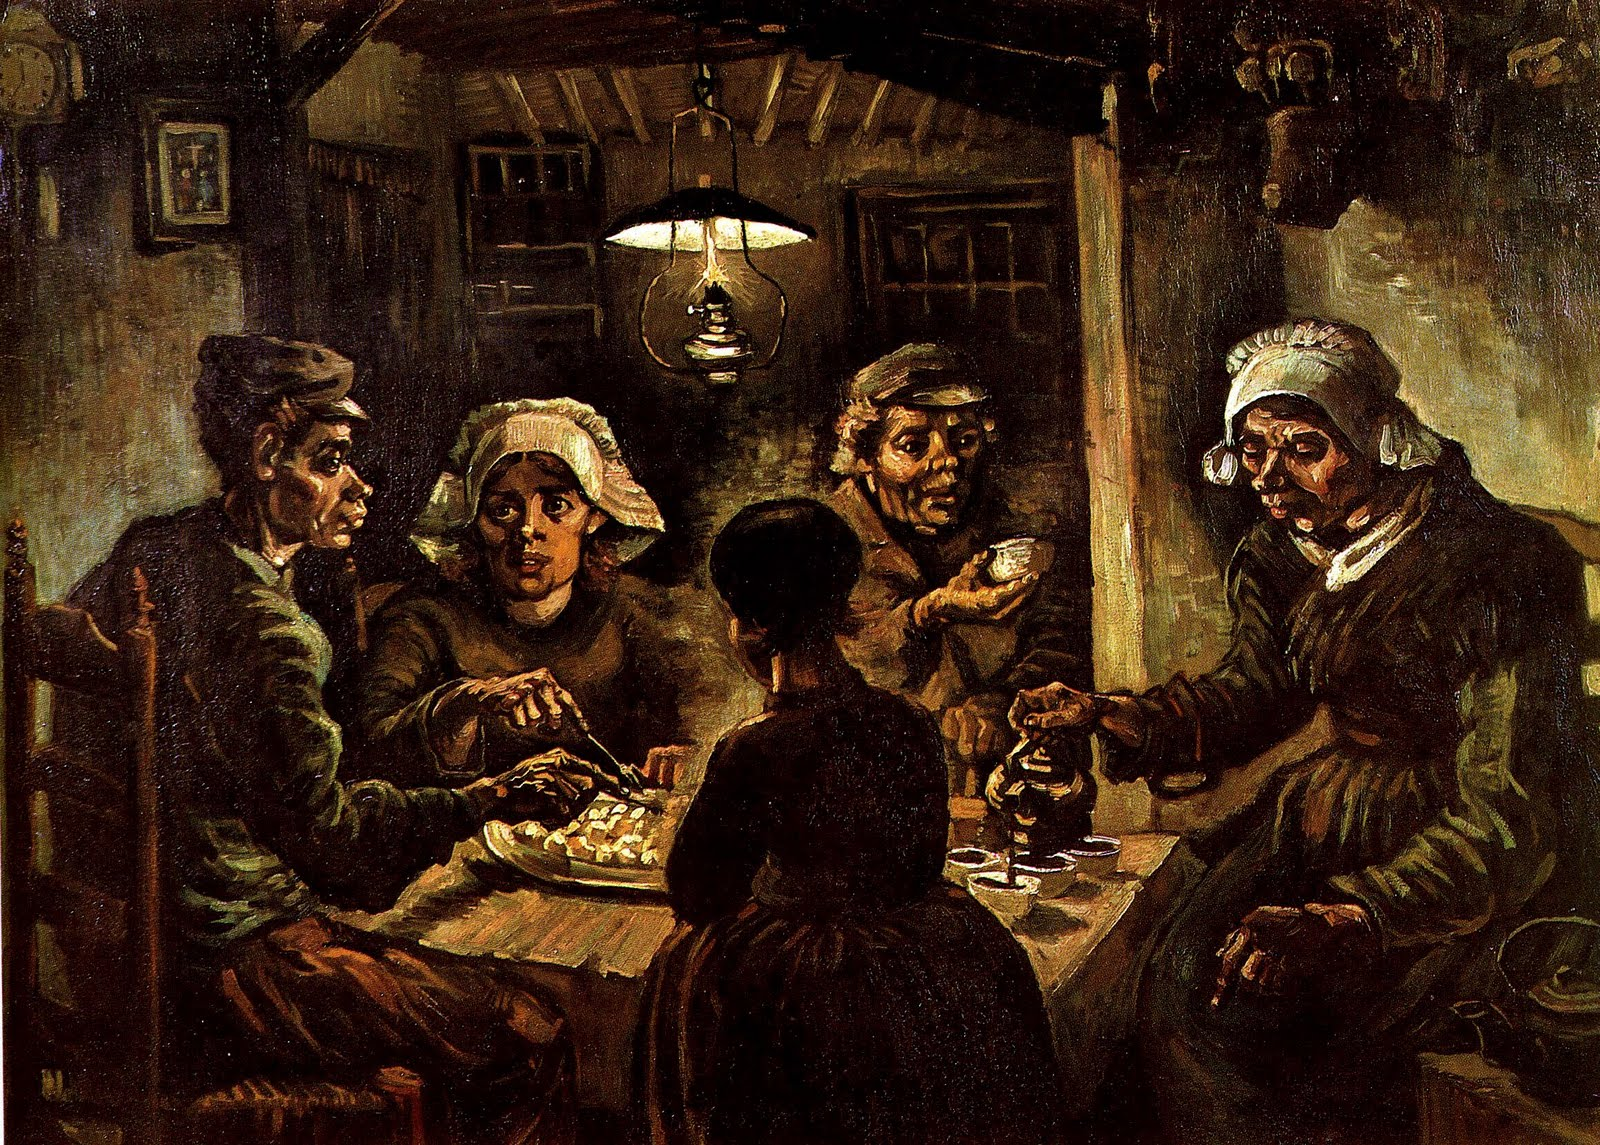 van_gogh_potato_eaters.jpg